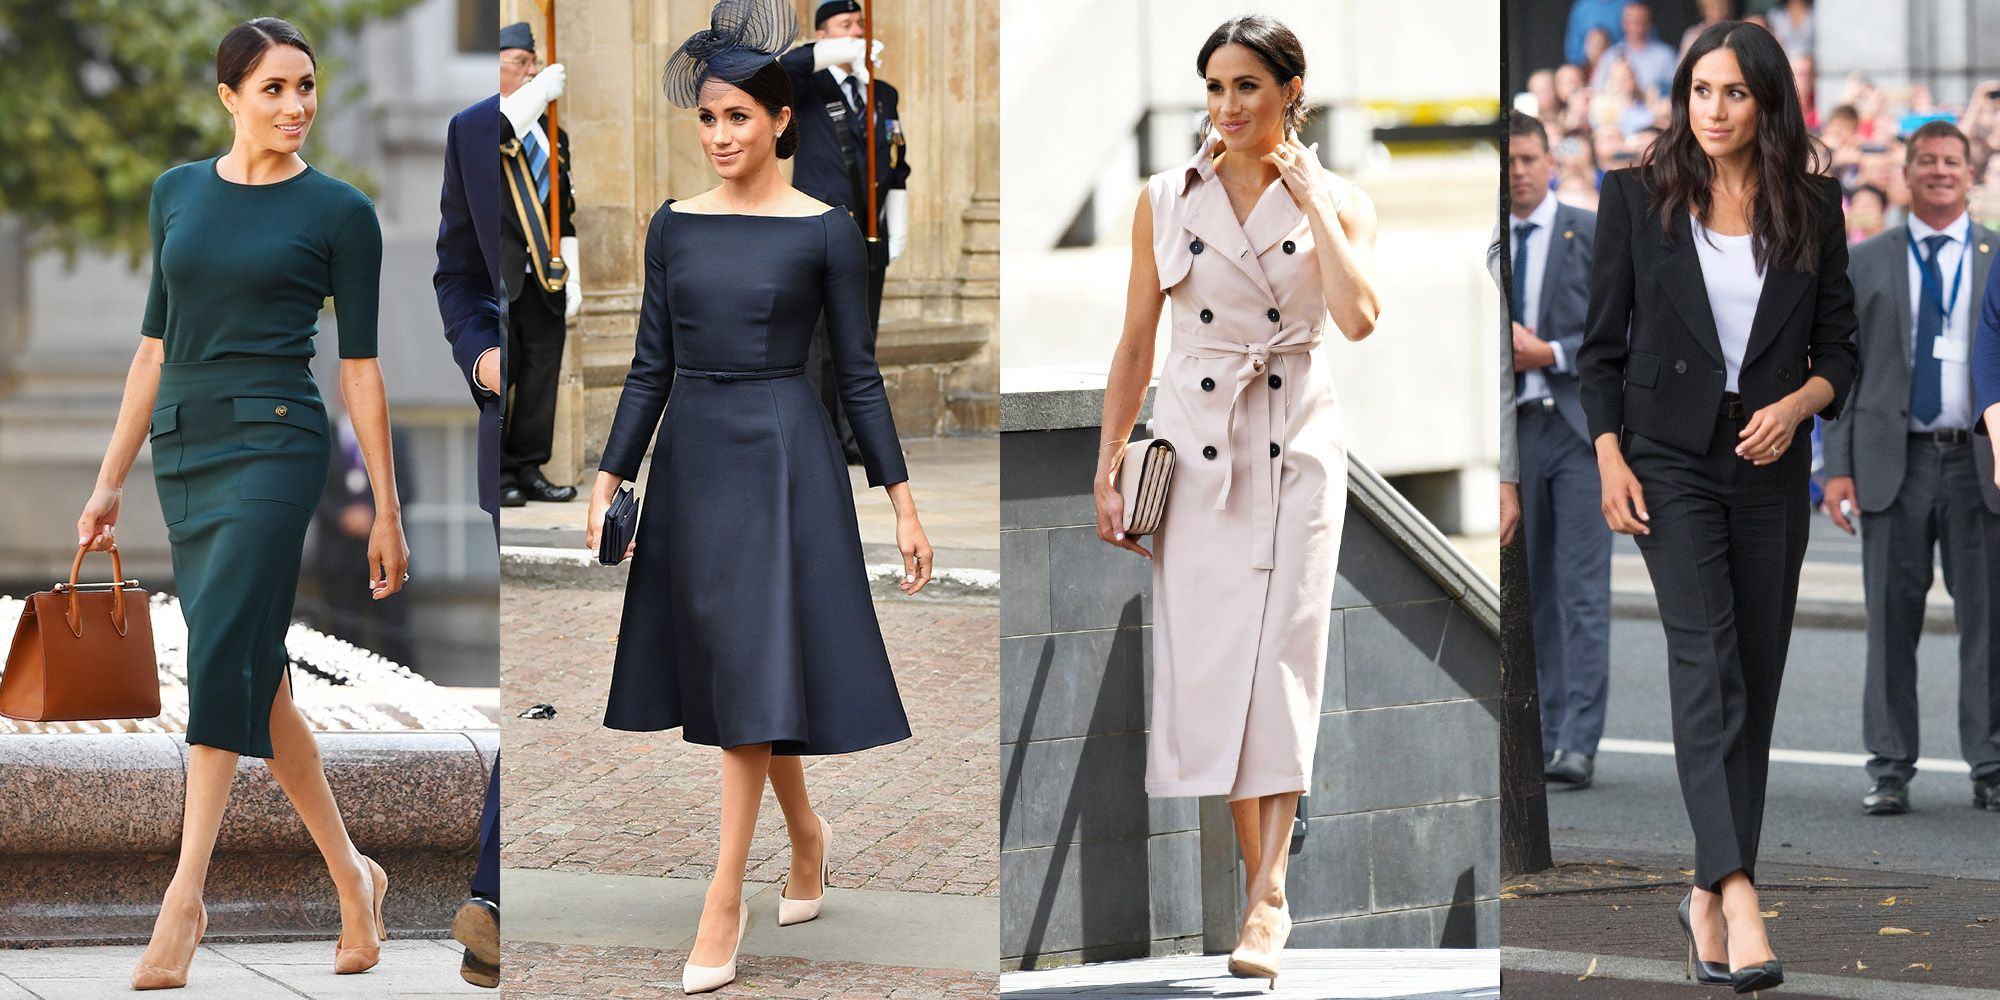 Everything Meghan Markle Has Worn Since The Royal Wedding Meghan